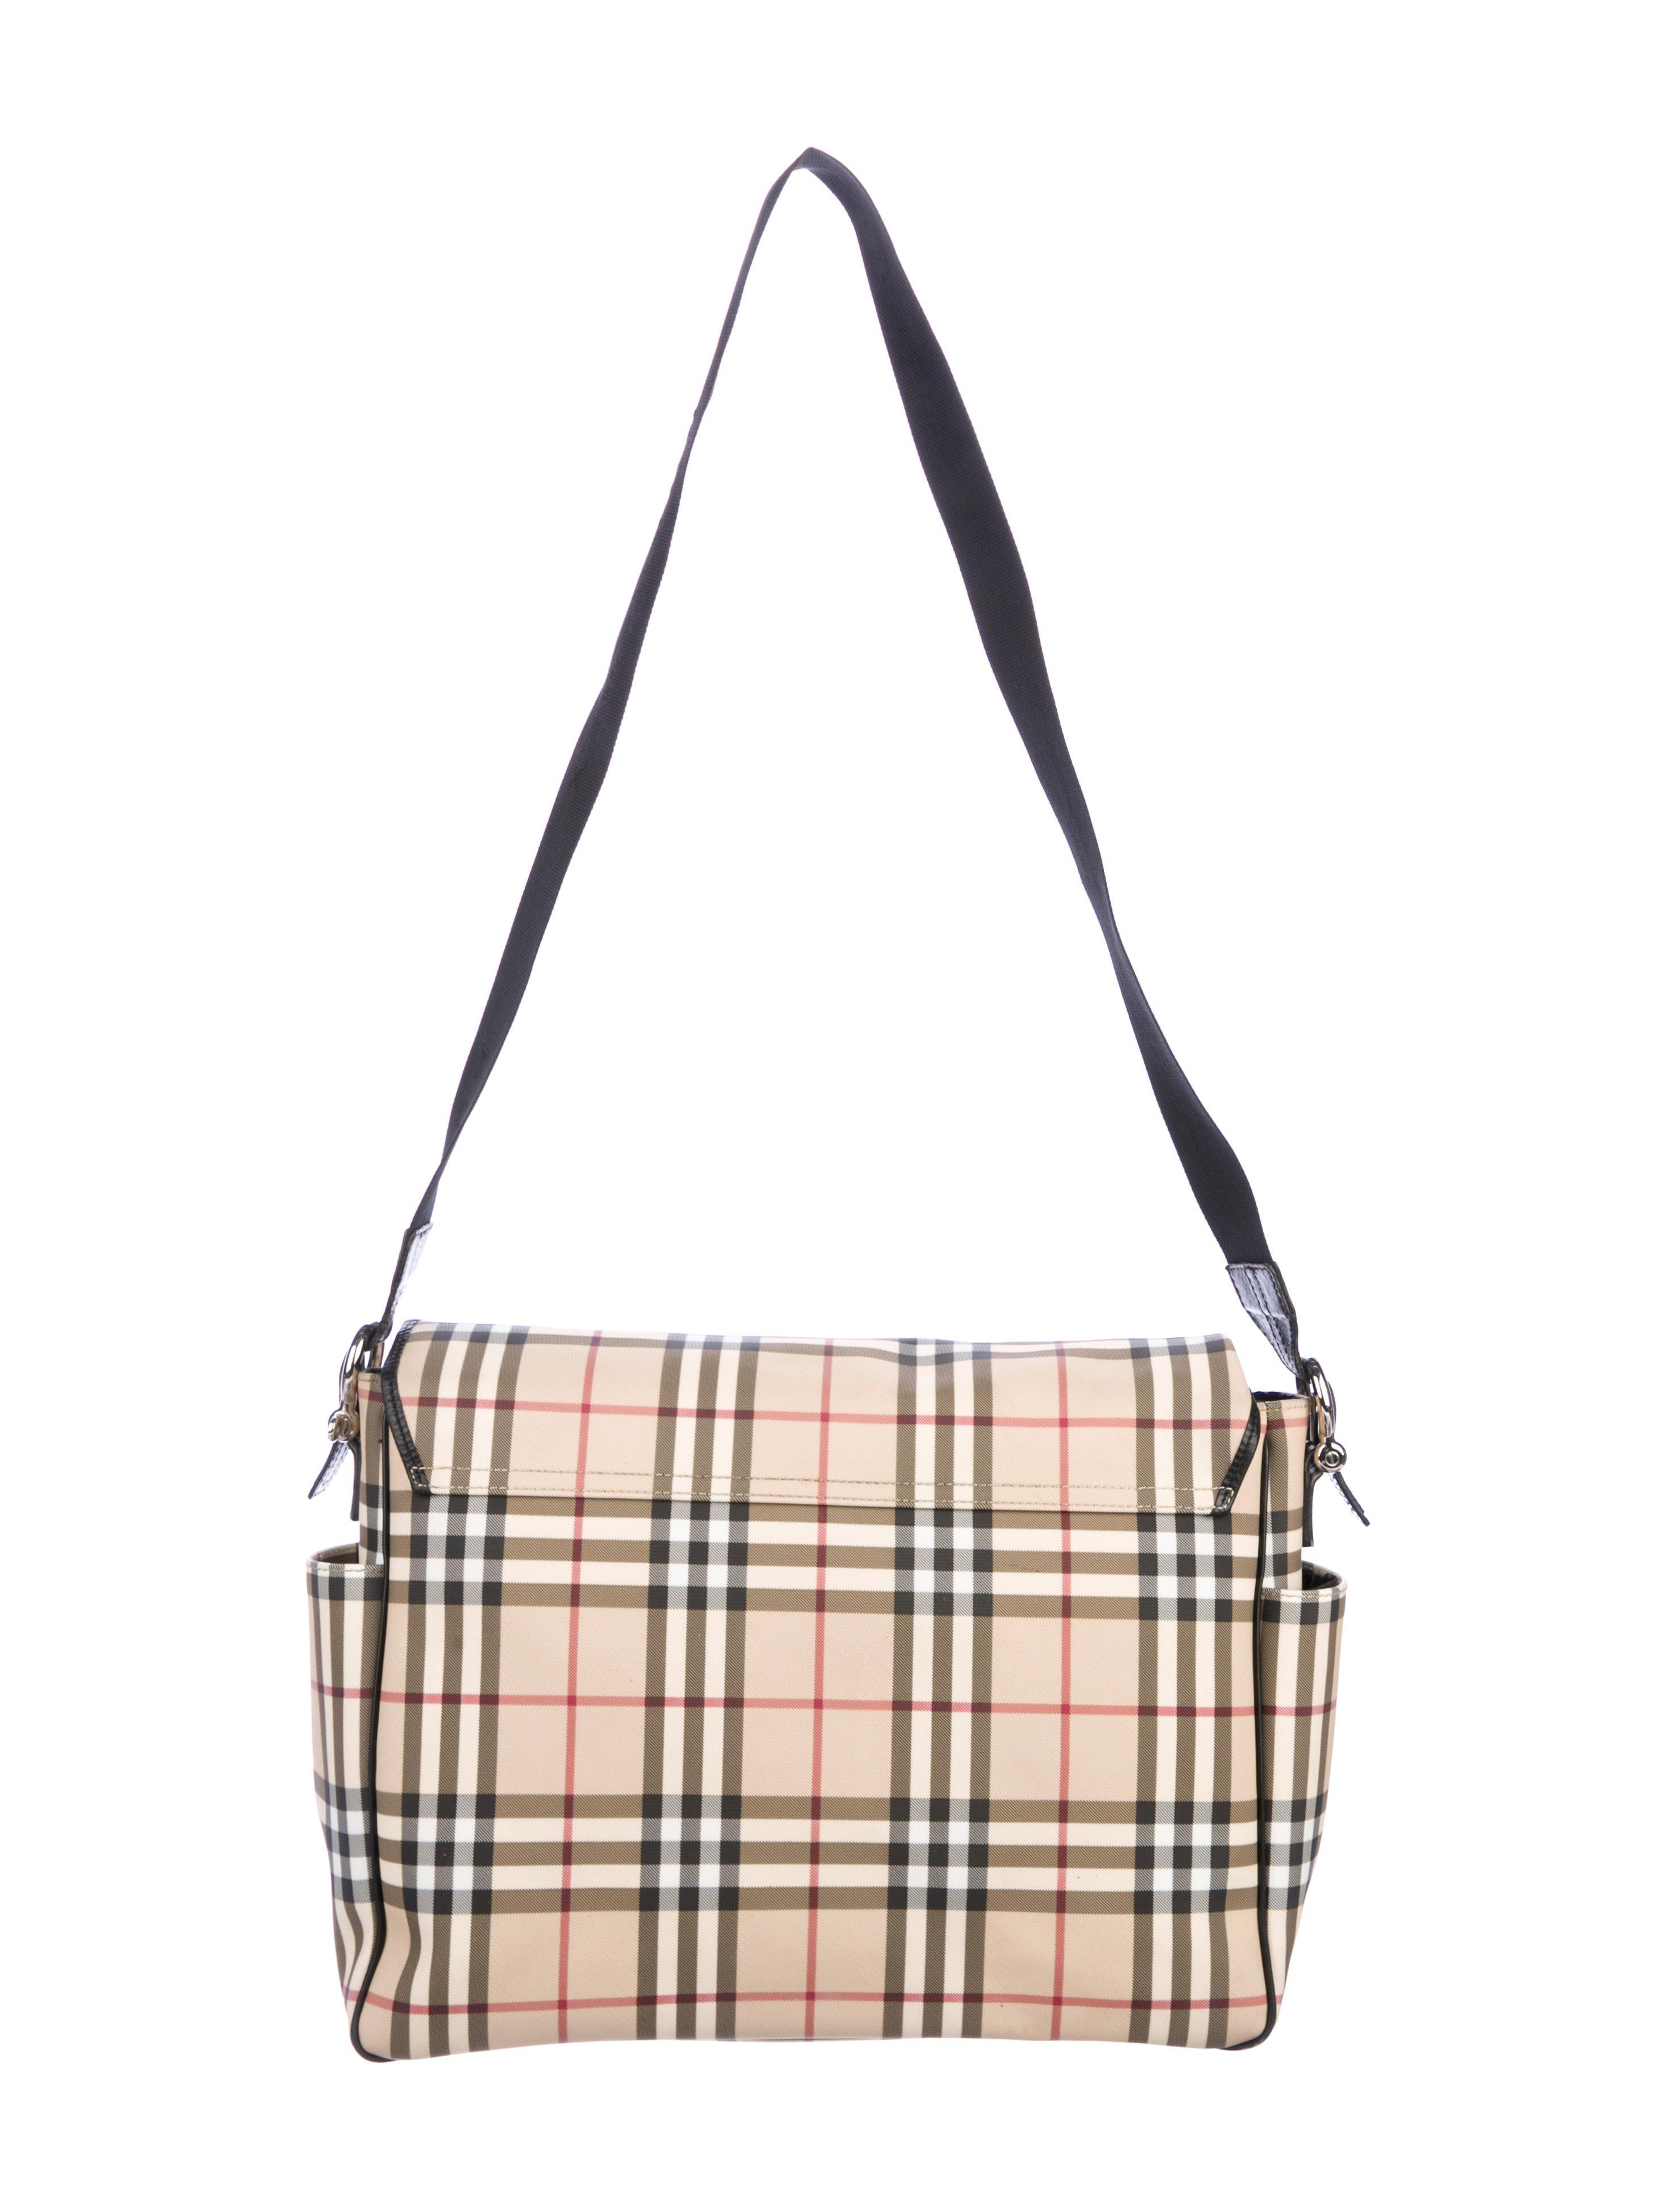 ae5caaac1b75 Beige and multicolor House check coated canvas Burberry London messenger bag  with silver-tone hardware